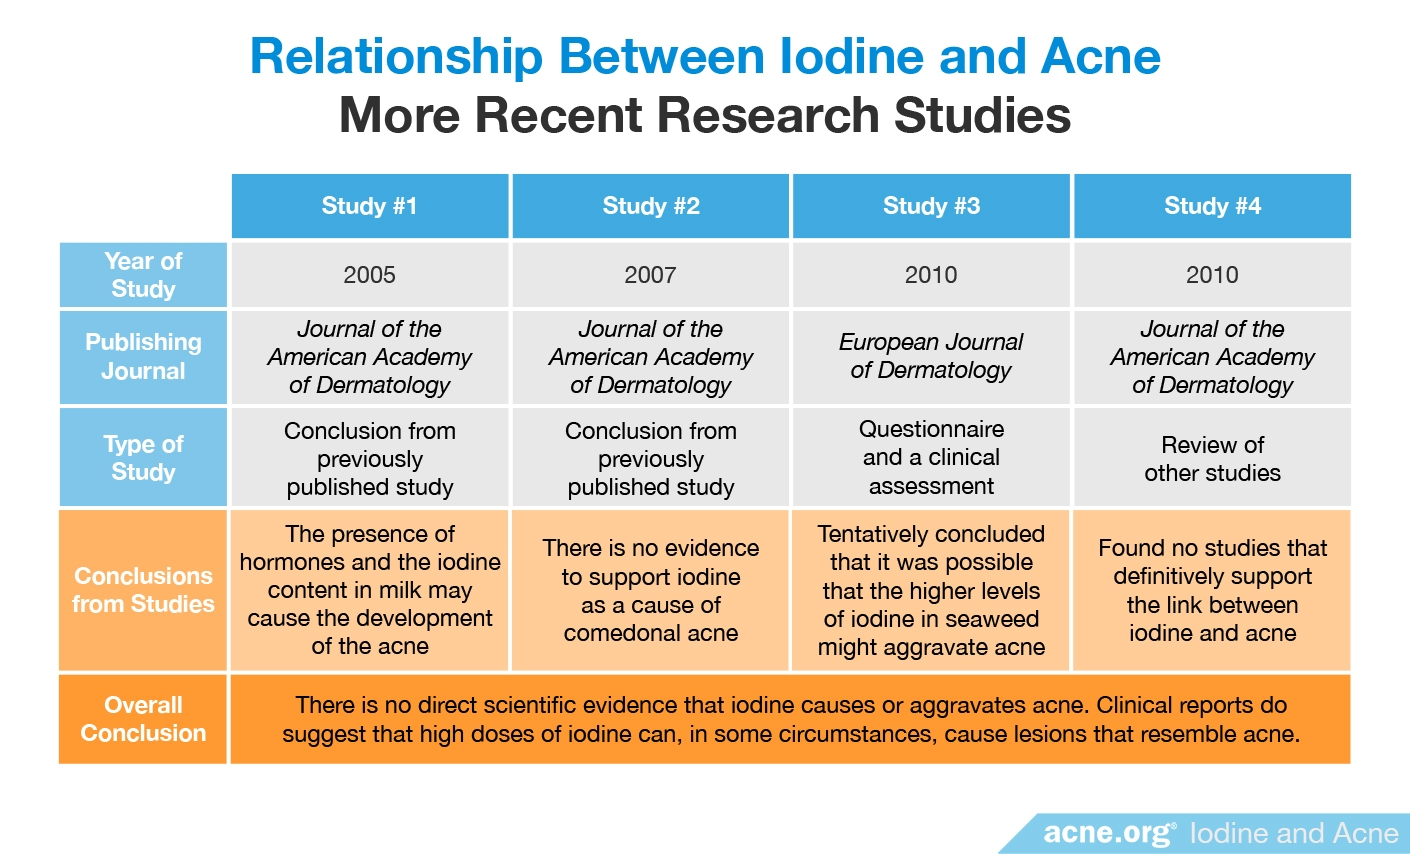 Relationship Between Iodine and Acne: More Recent Research Studies